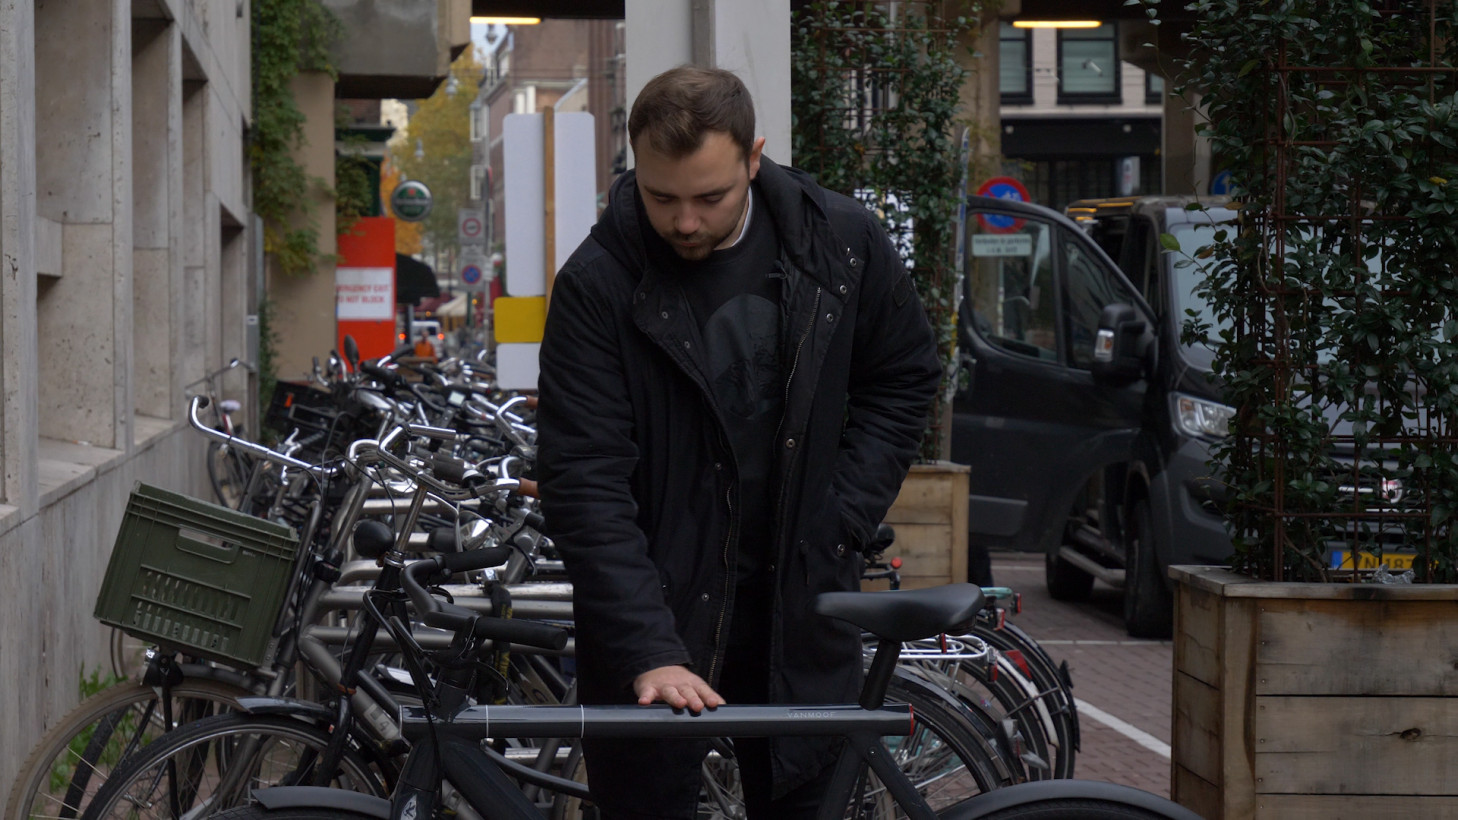 Video: VanMoof's new electric bike is brilliant but costly